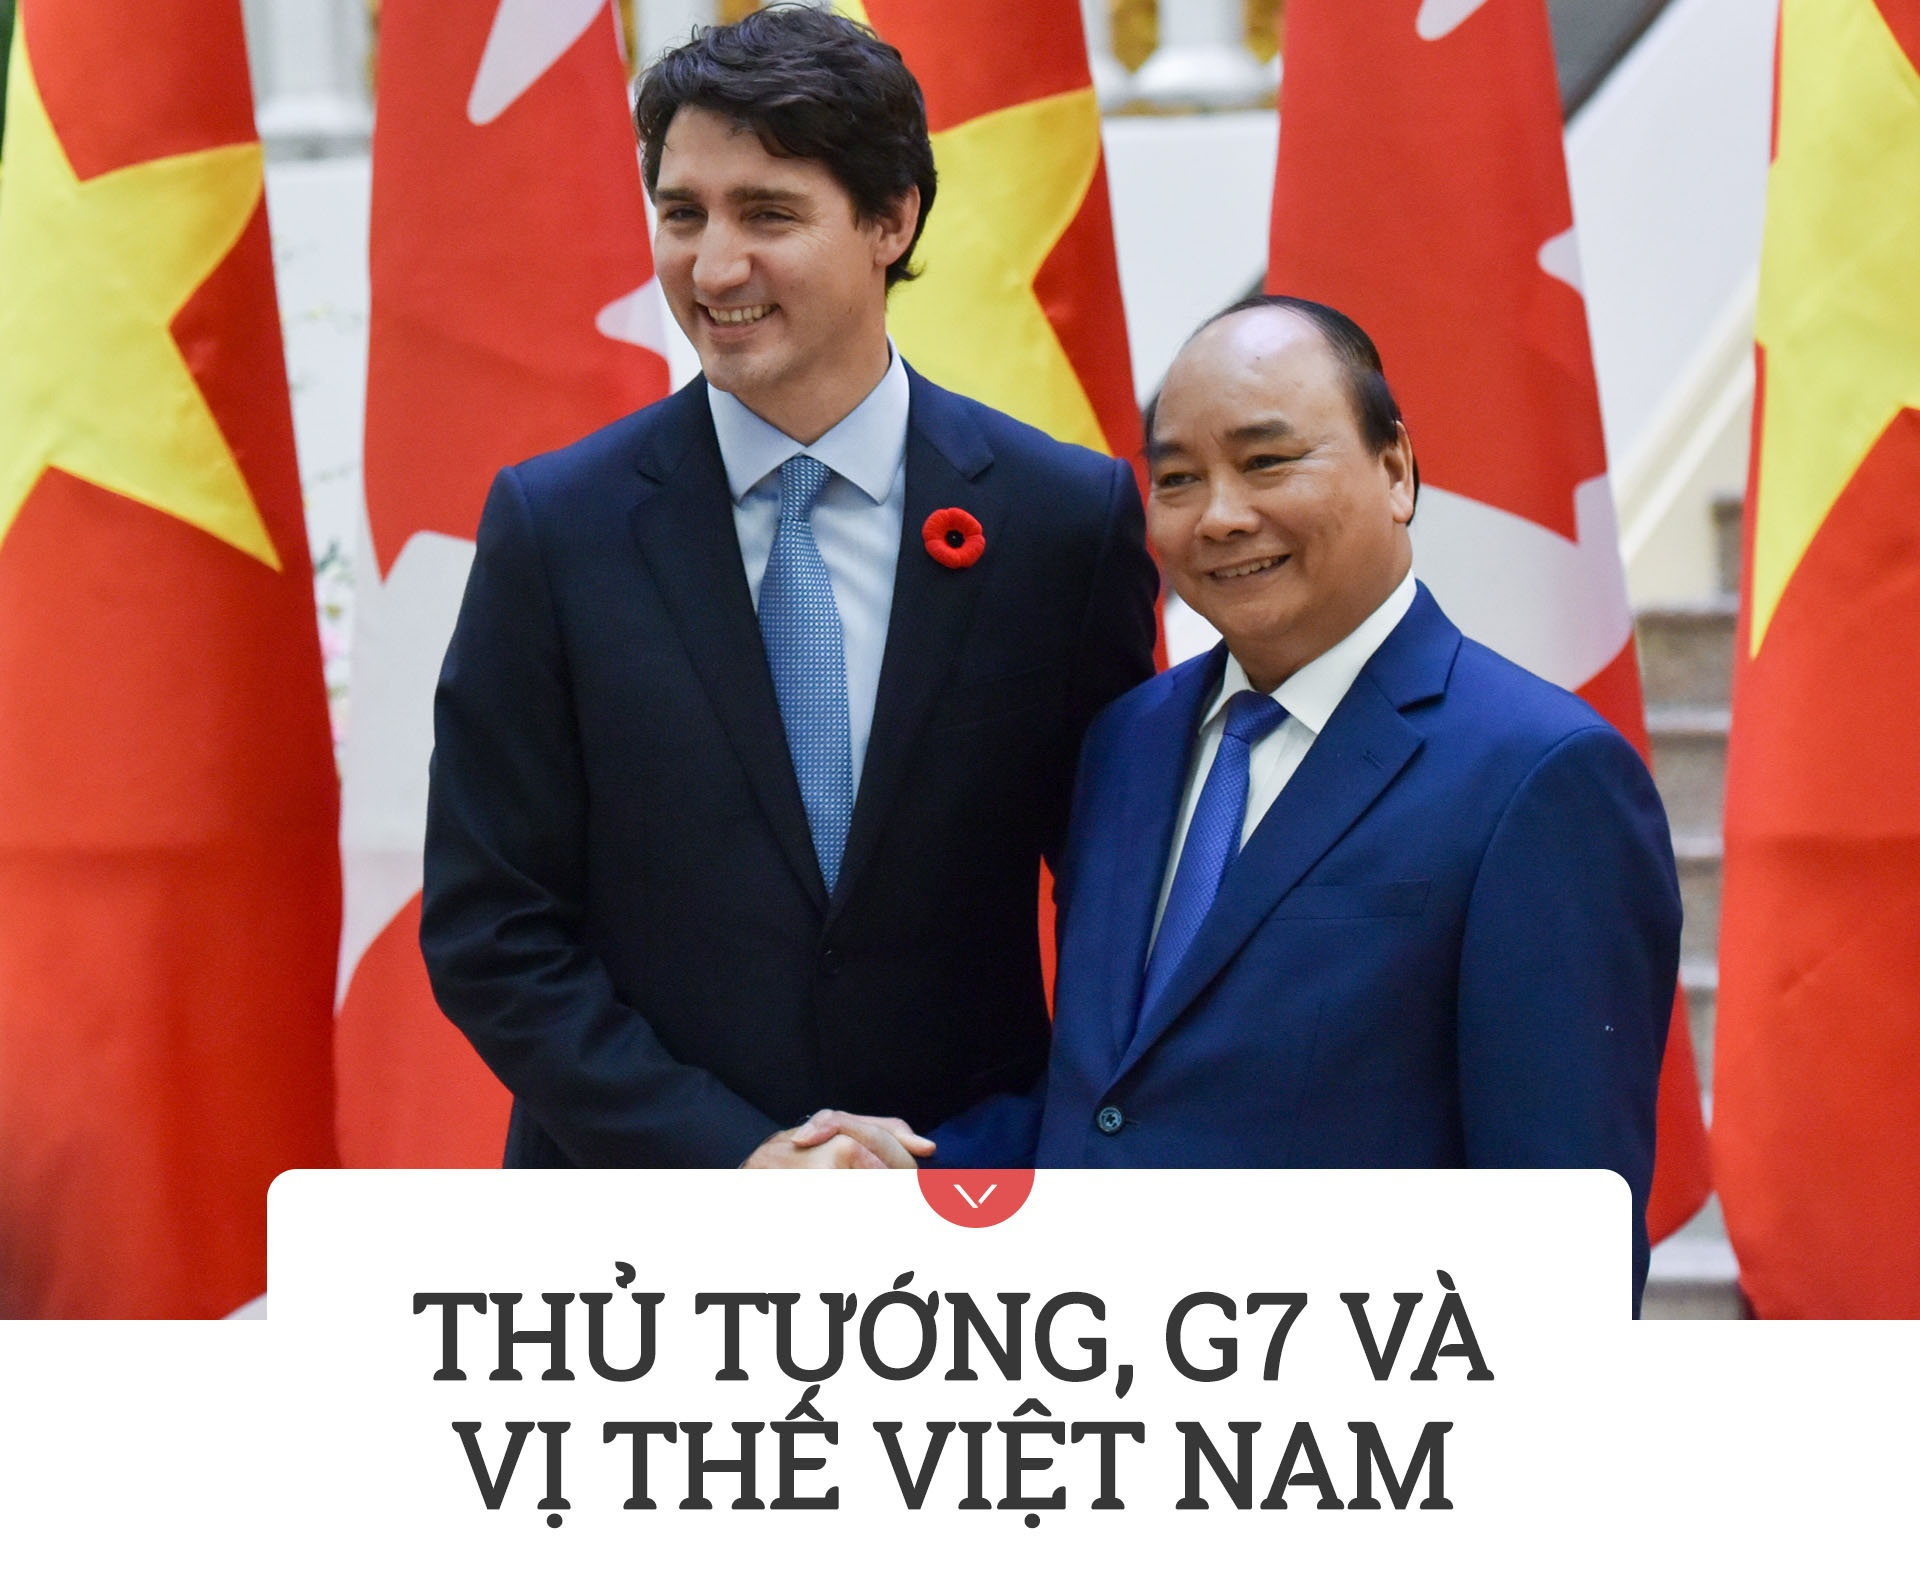 thu tuong du hoi nghi g7 anh 2